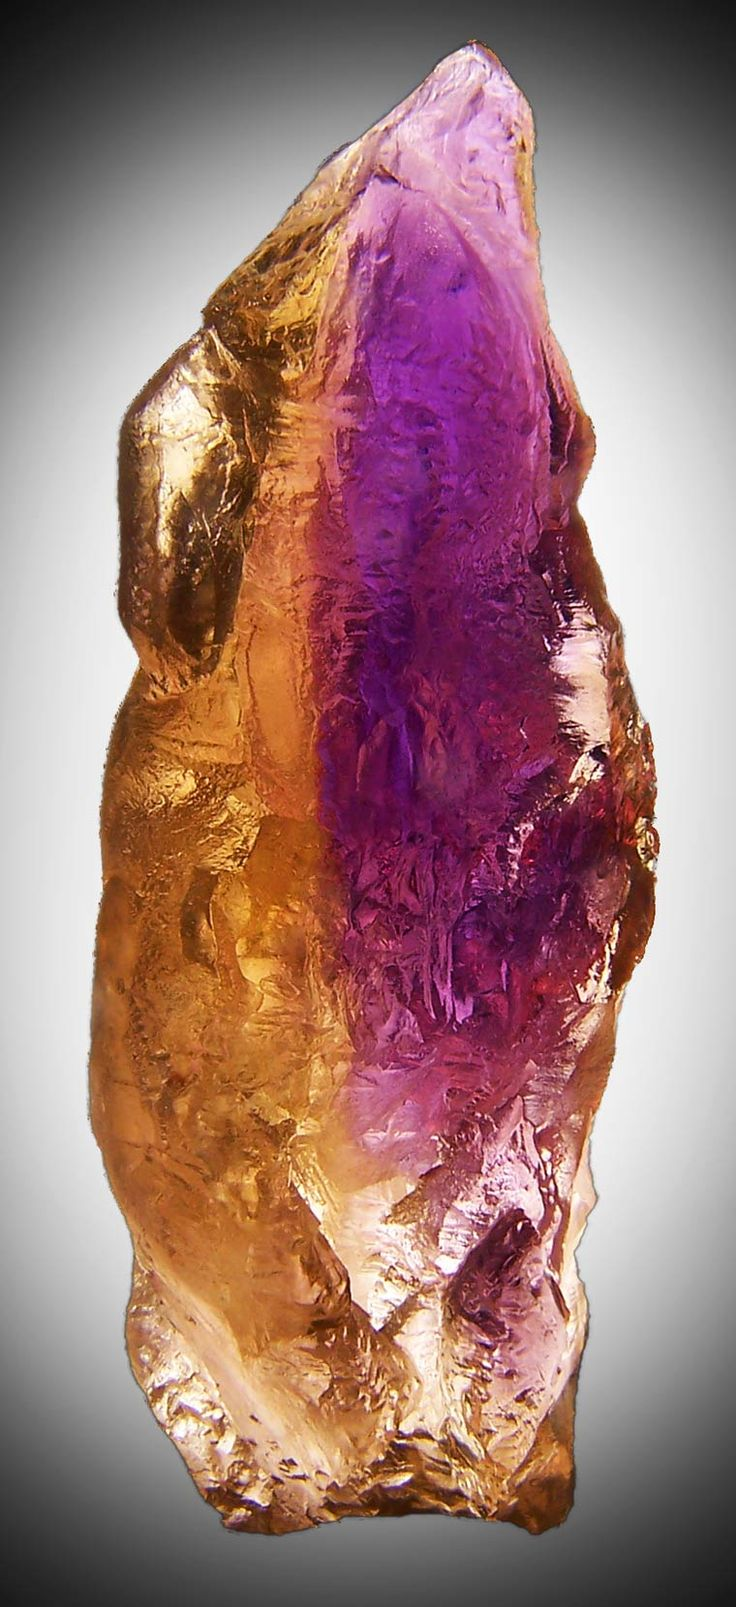 Ametrine ~ Many believe that it contains the powers of amethyst and citrine in one stone, making it a very powerful money stone as well as an excellent via to higher psychic awareness and spiritual enlightenment.